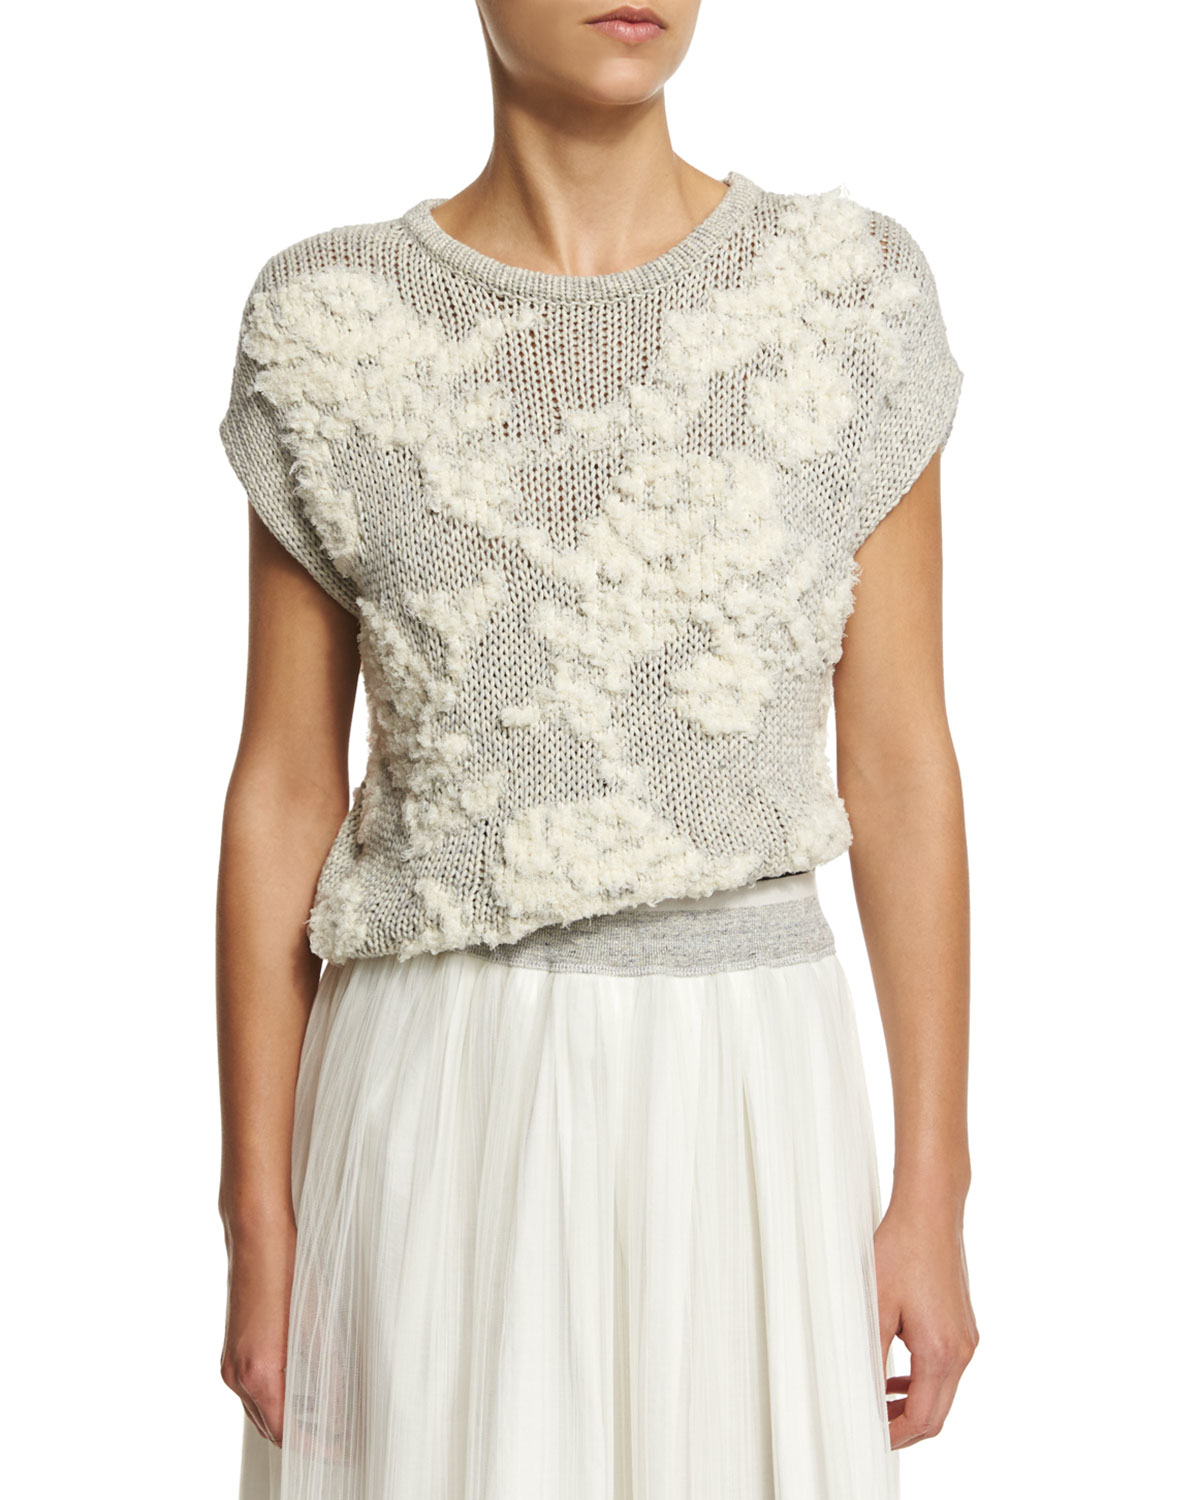 Brunello cucinelli Floral-knit Short-sleeve Sweater in Gray Lyst